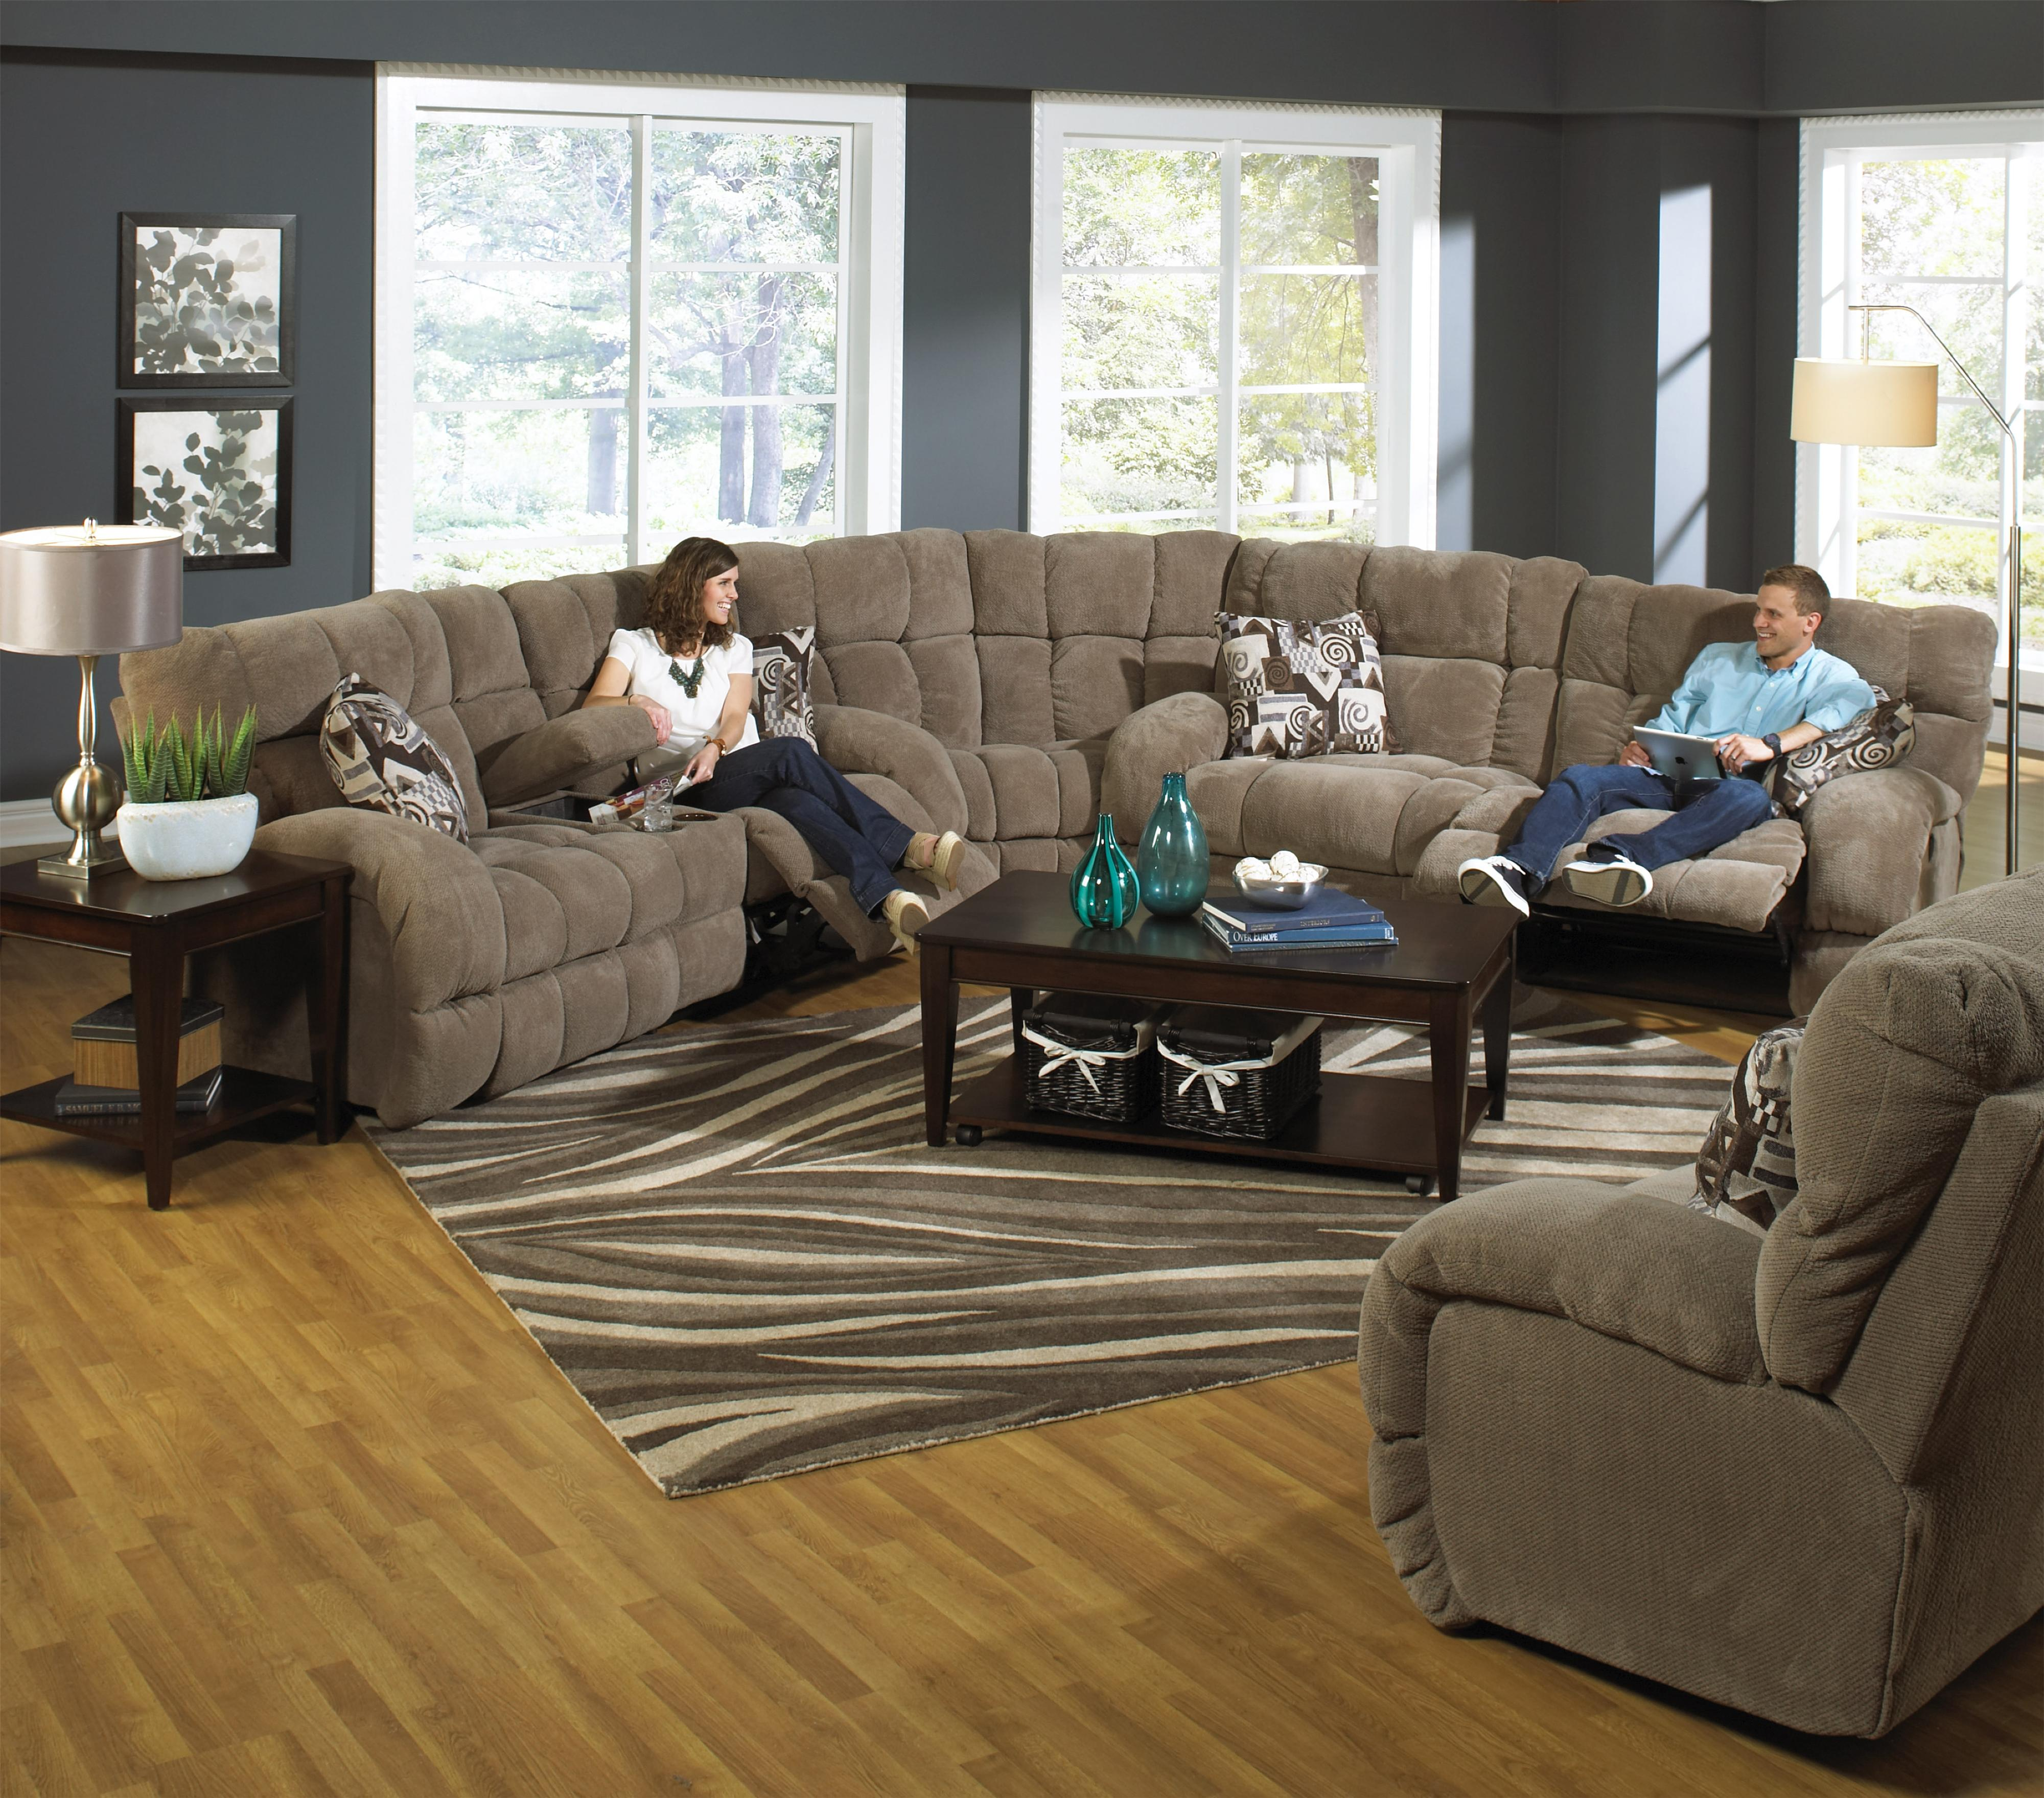 Power Reclining Sectional Sofa with Cup Holders by Catnapper